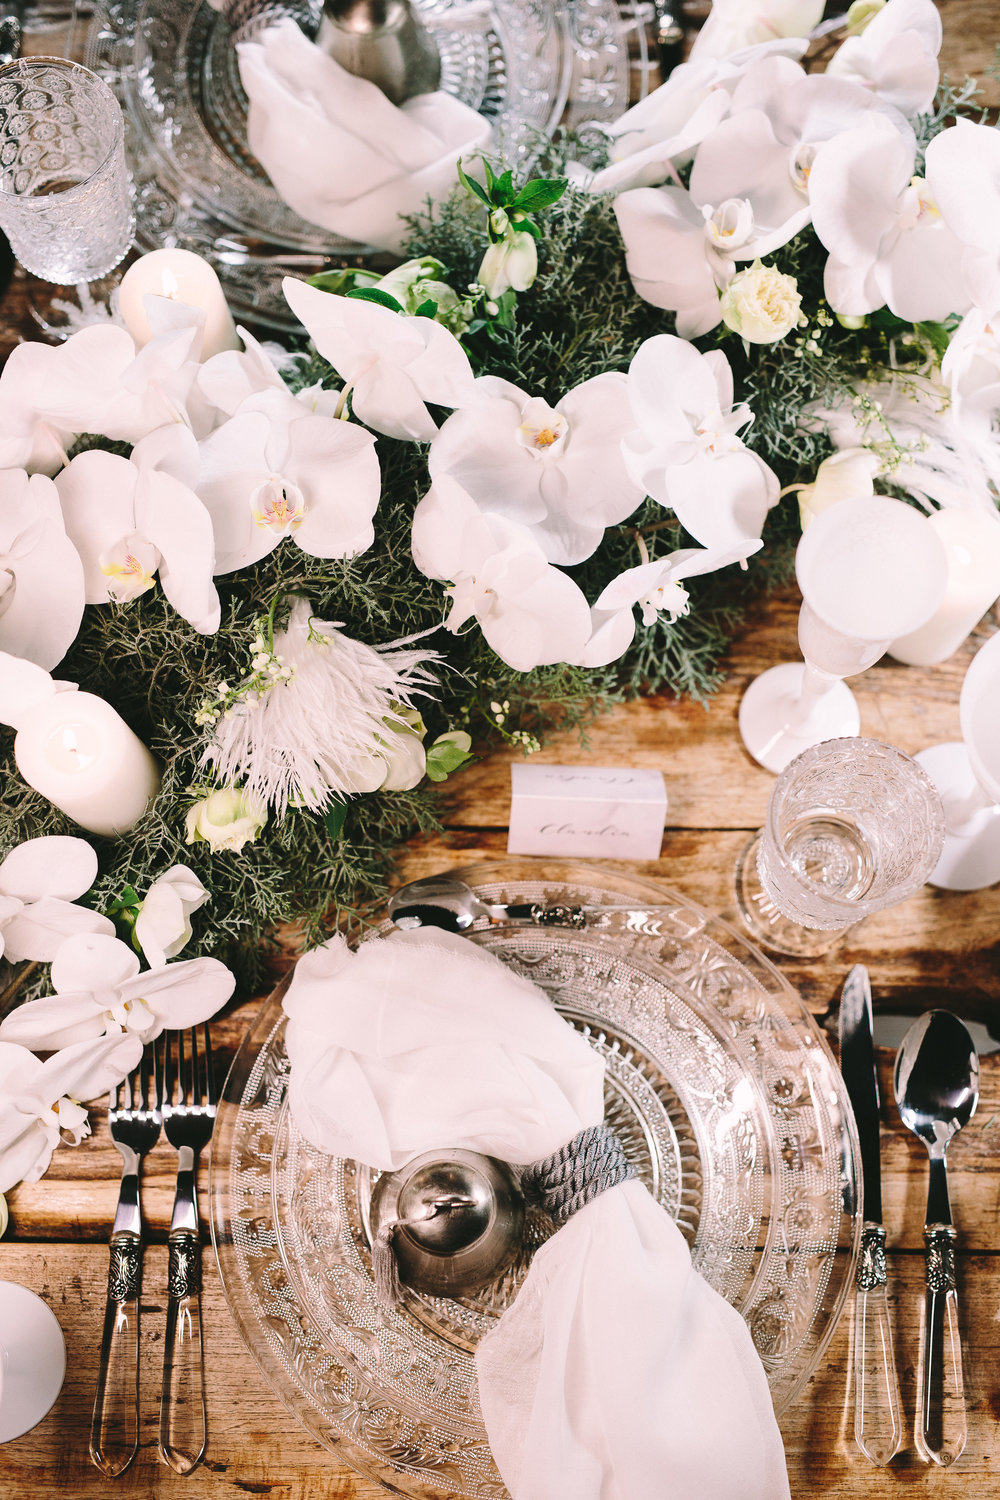 Destination-winter-wedding-greece-wedding-planning-snow-white-feathers-luxury-silver-cutlery-napkin-orchids-greenery-chic